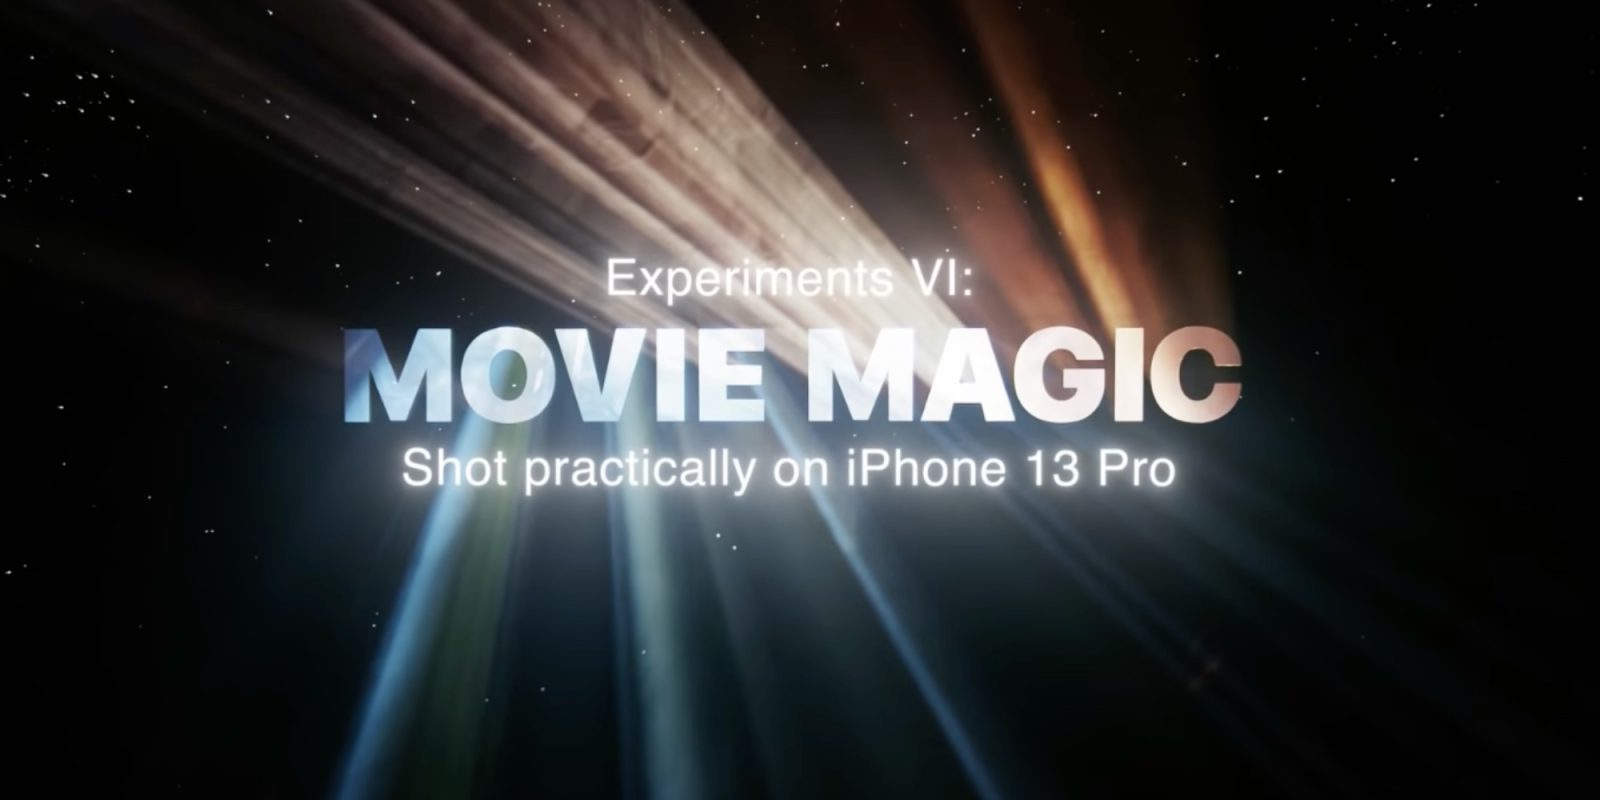 Apple promotes iPhone 13 Pro cameras with new 'Experiments VI: Movie Magic' video